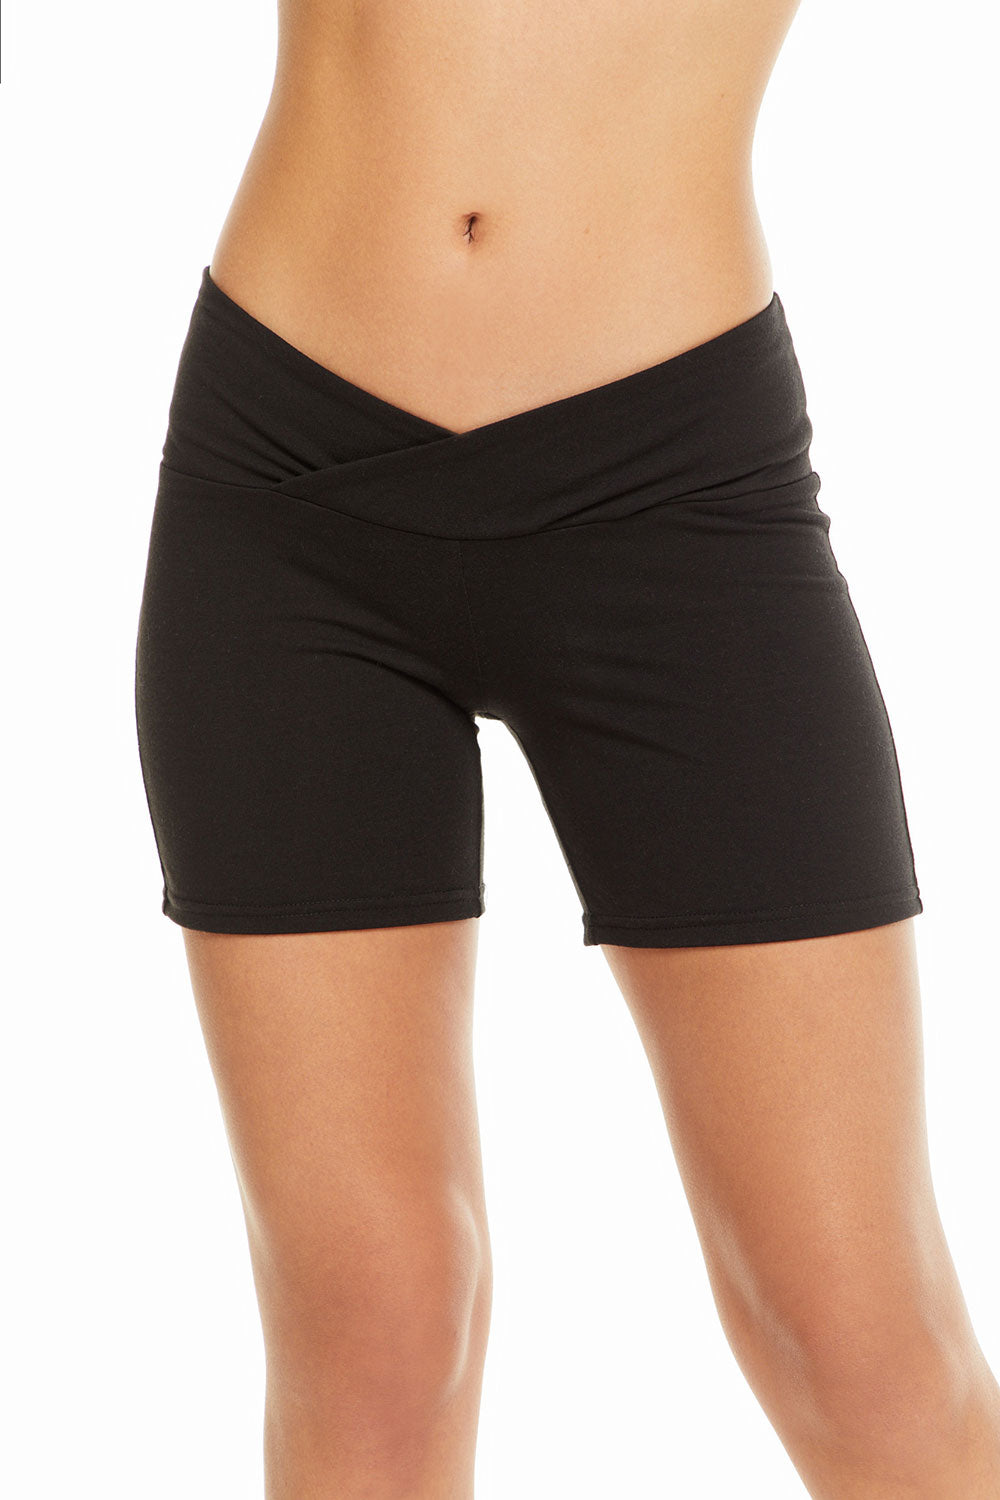 Quadrablend Overlap Waistband Active Shorts WOMENS chaserbrand4.myshopify.com